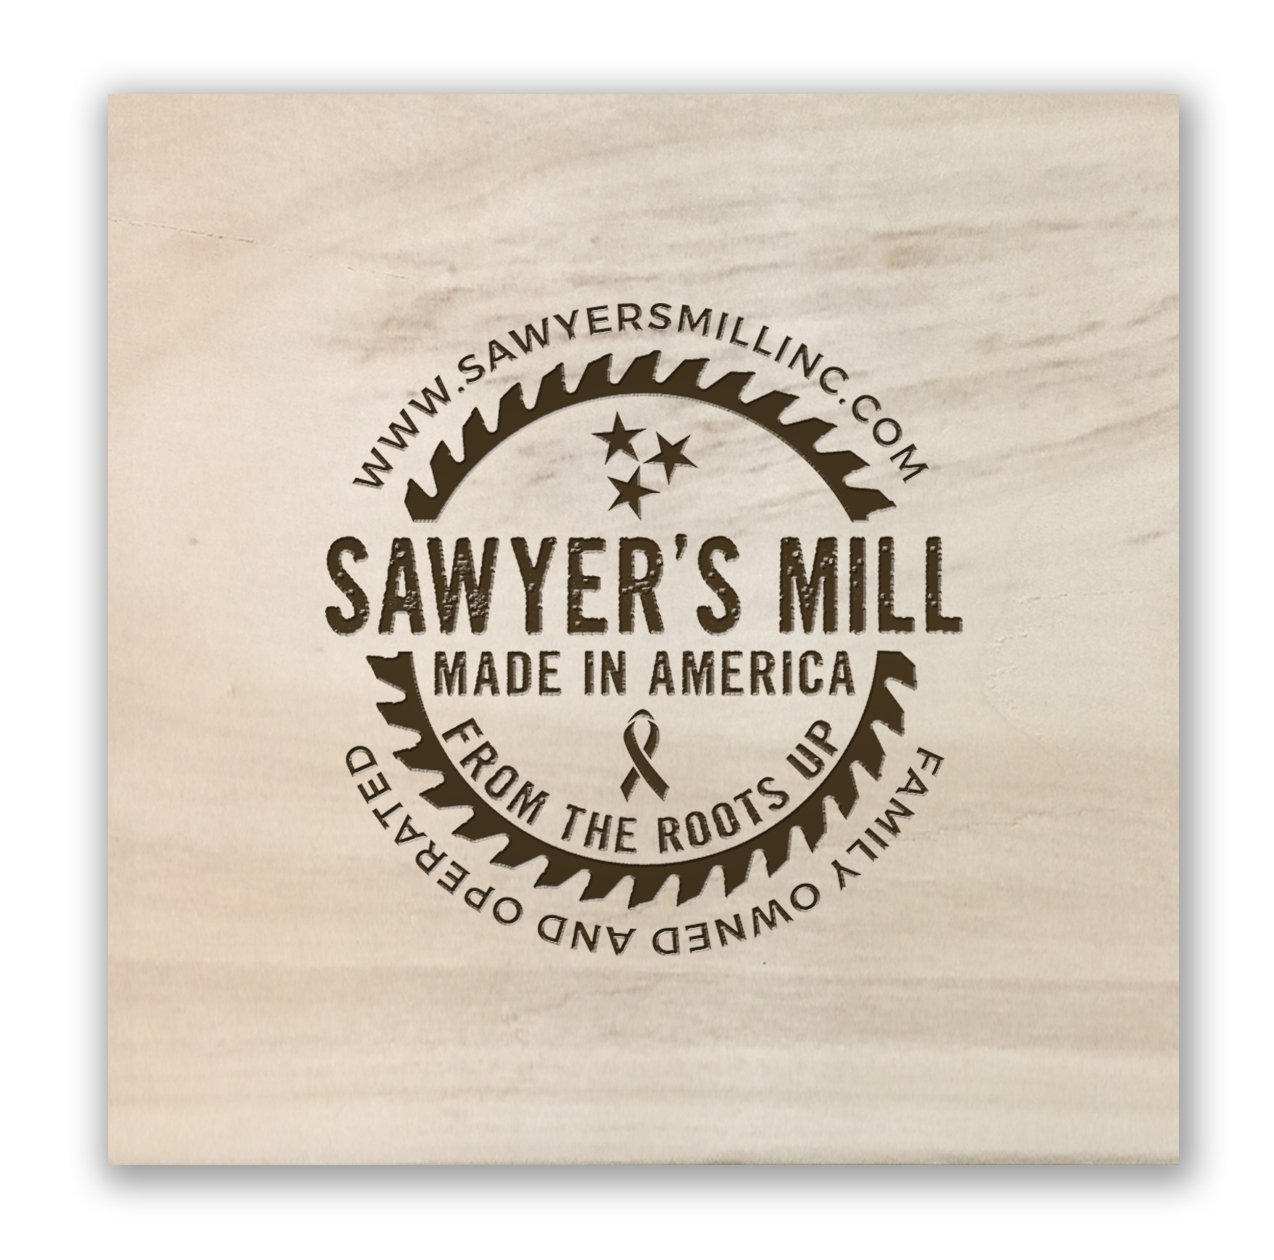 Bang Head Here Wooden Square Block with Funny Quote from Pinterest 4-inch by 4-inch